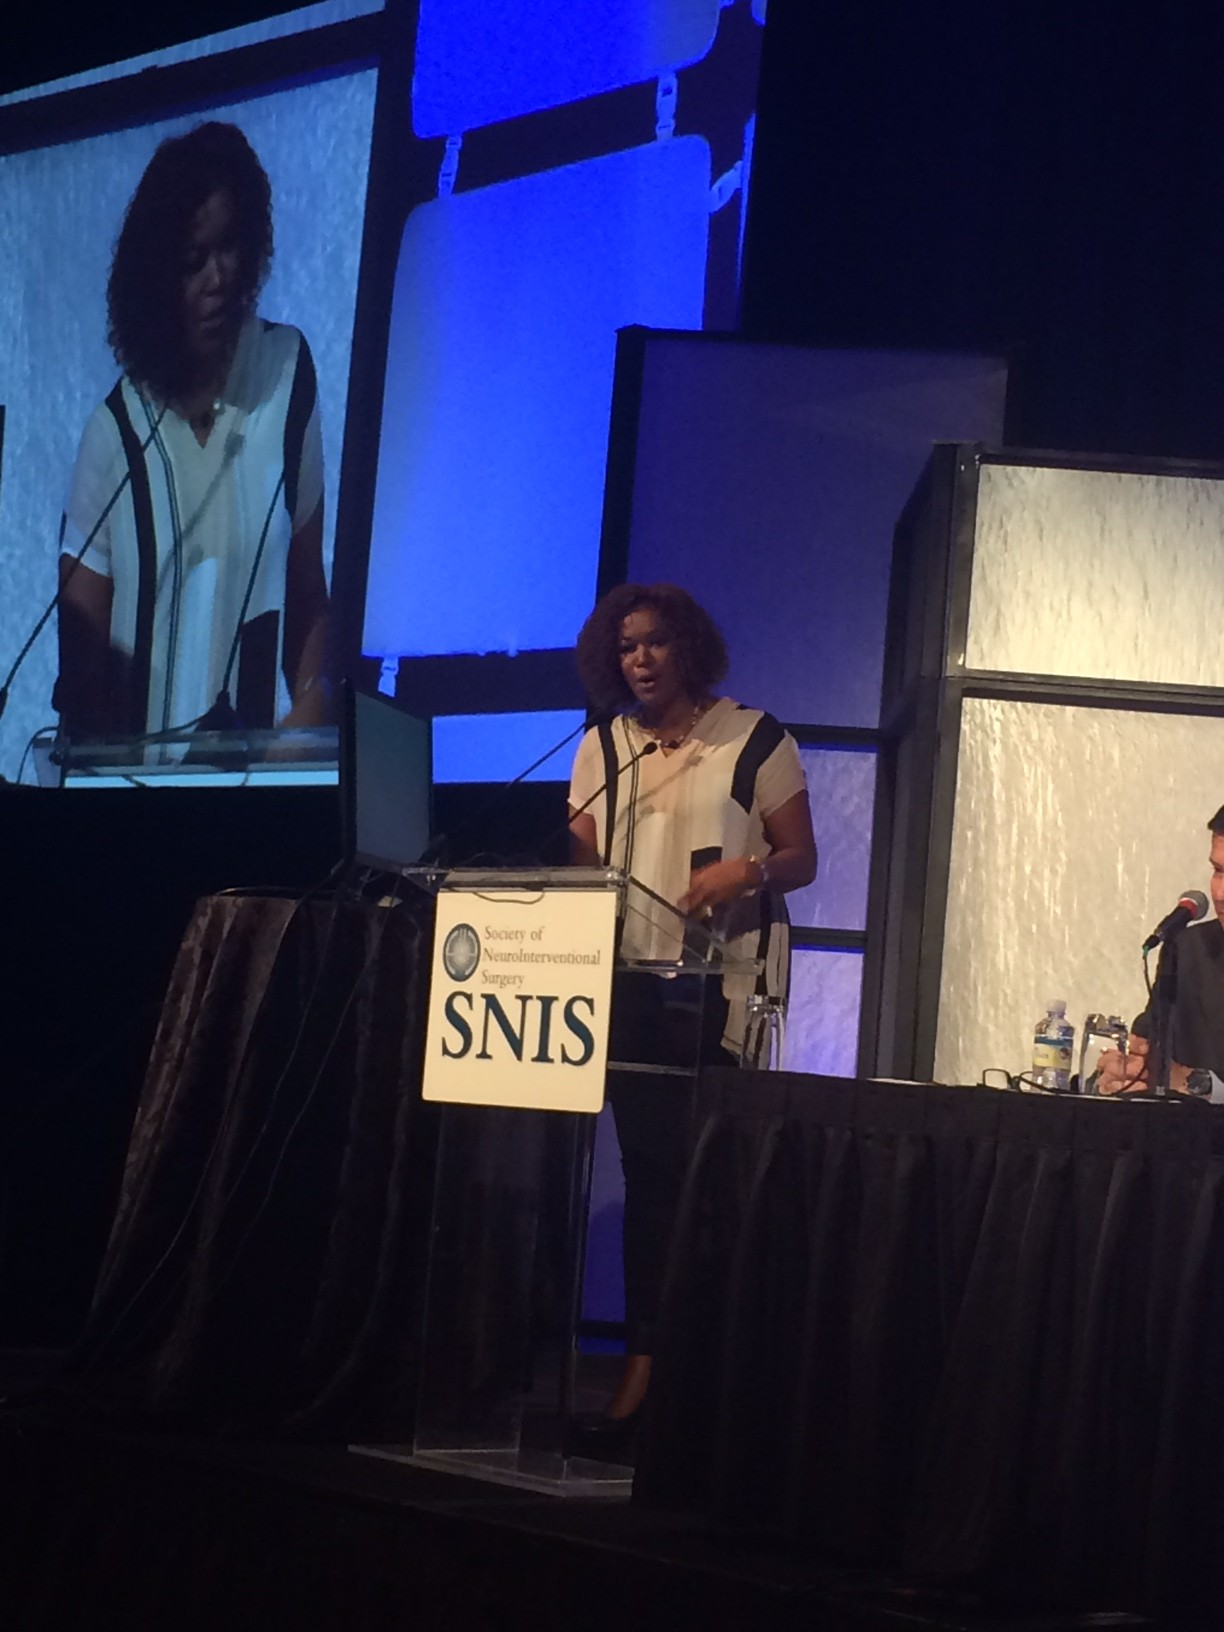 https://www.joeniekrofoundation.com/aneurysms/jnf-shines-at-snis-annual-meeting/attachment/deborah/